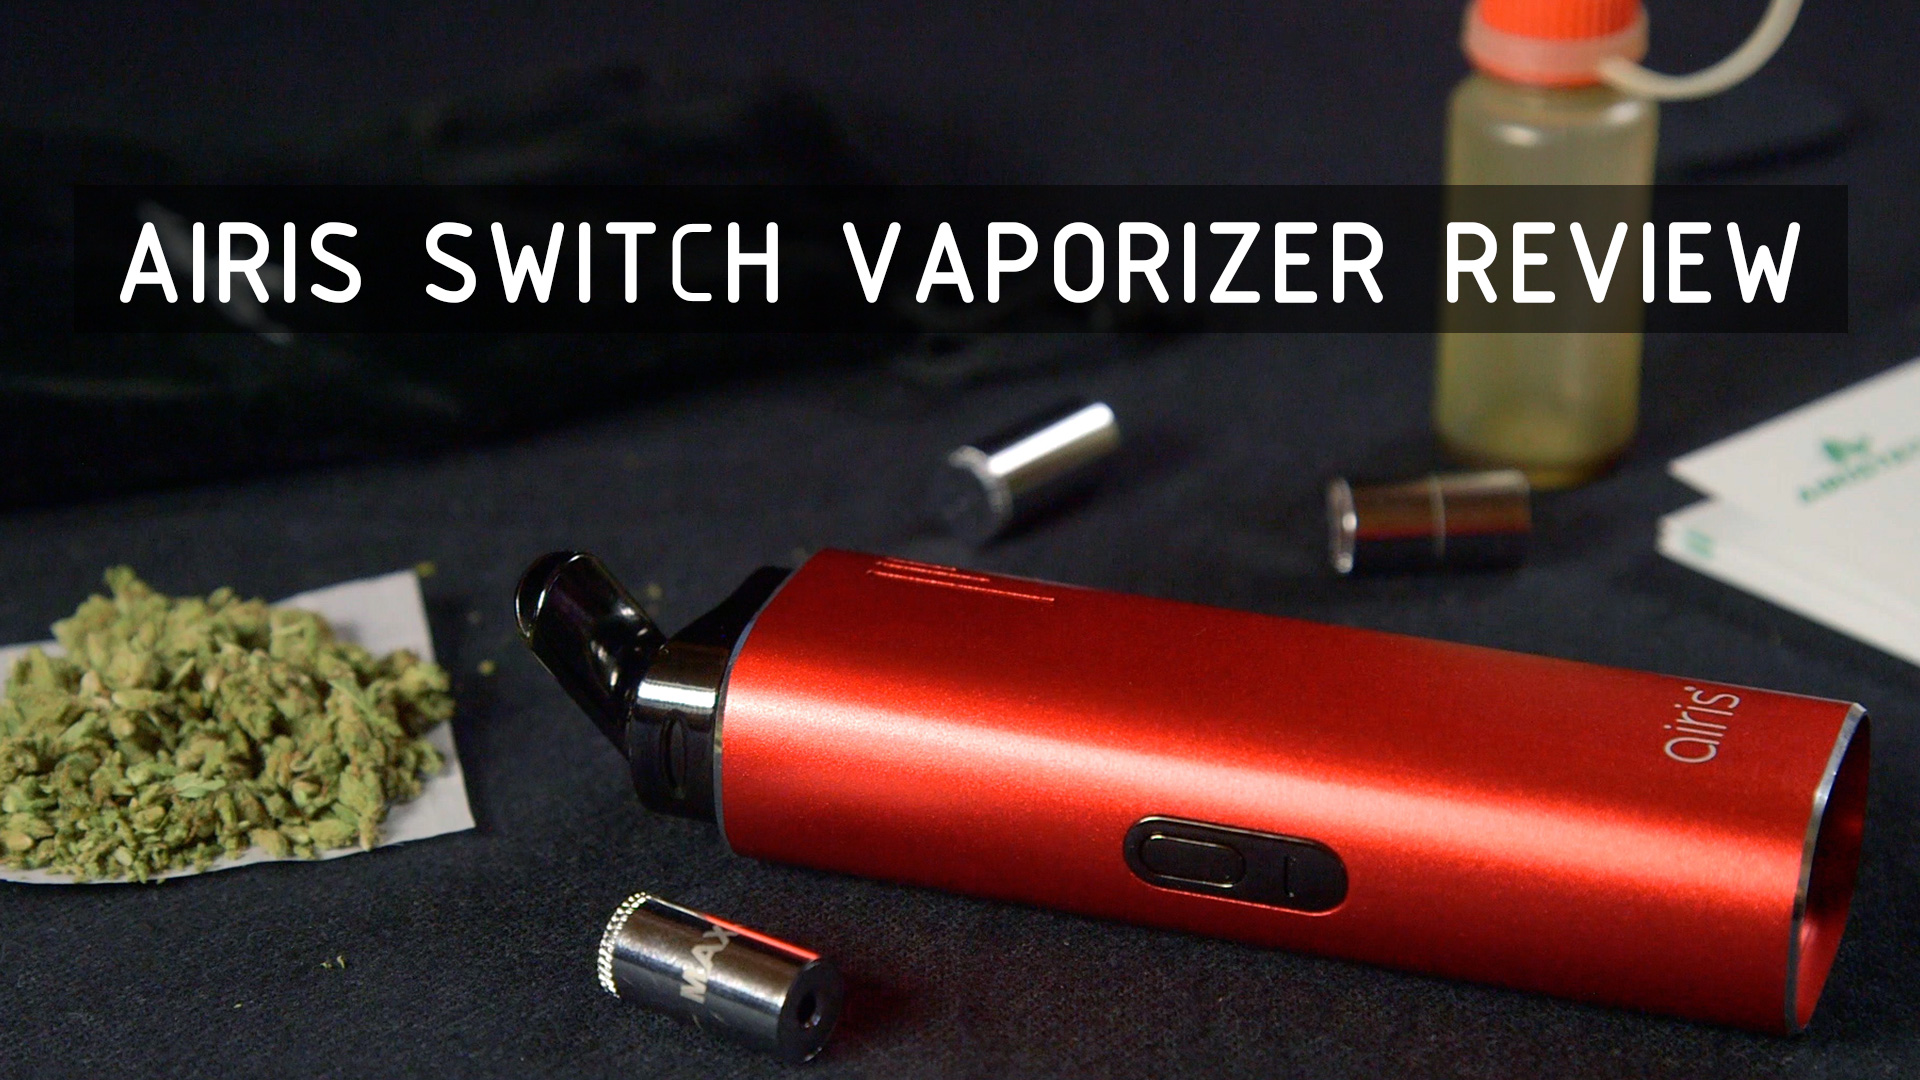 Airis Switch 3-in-1 Vaporizer Review